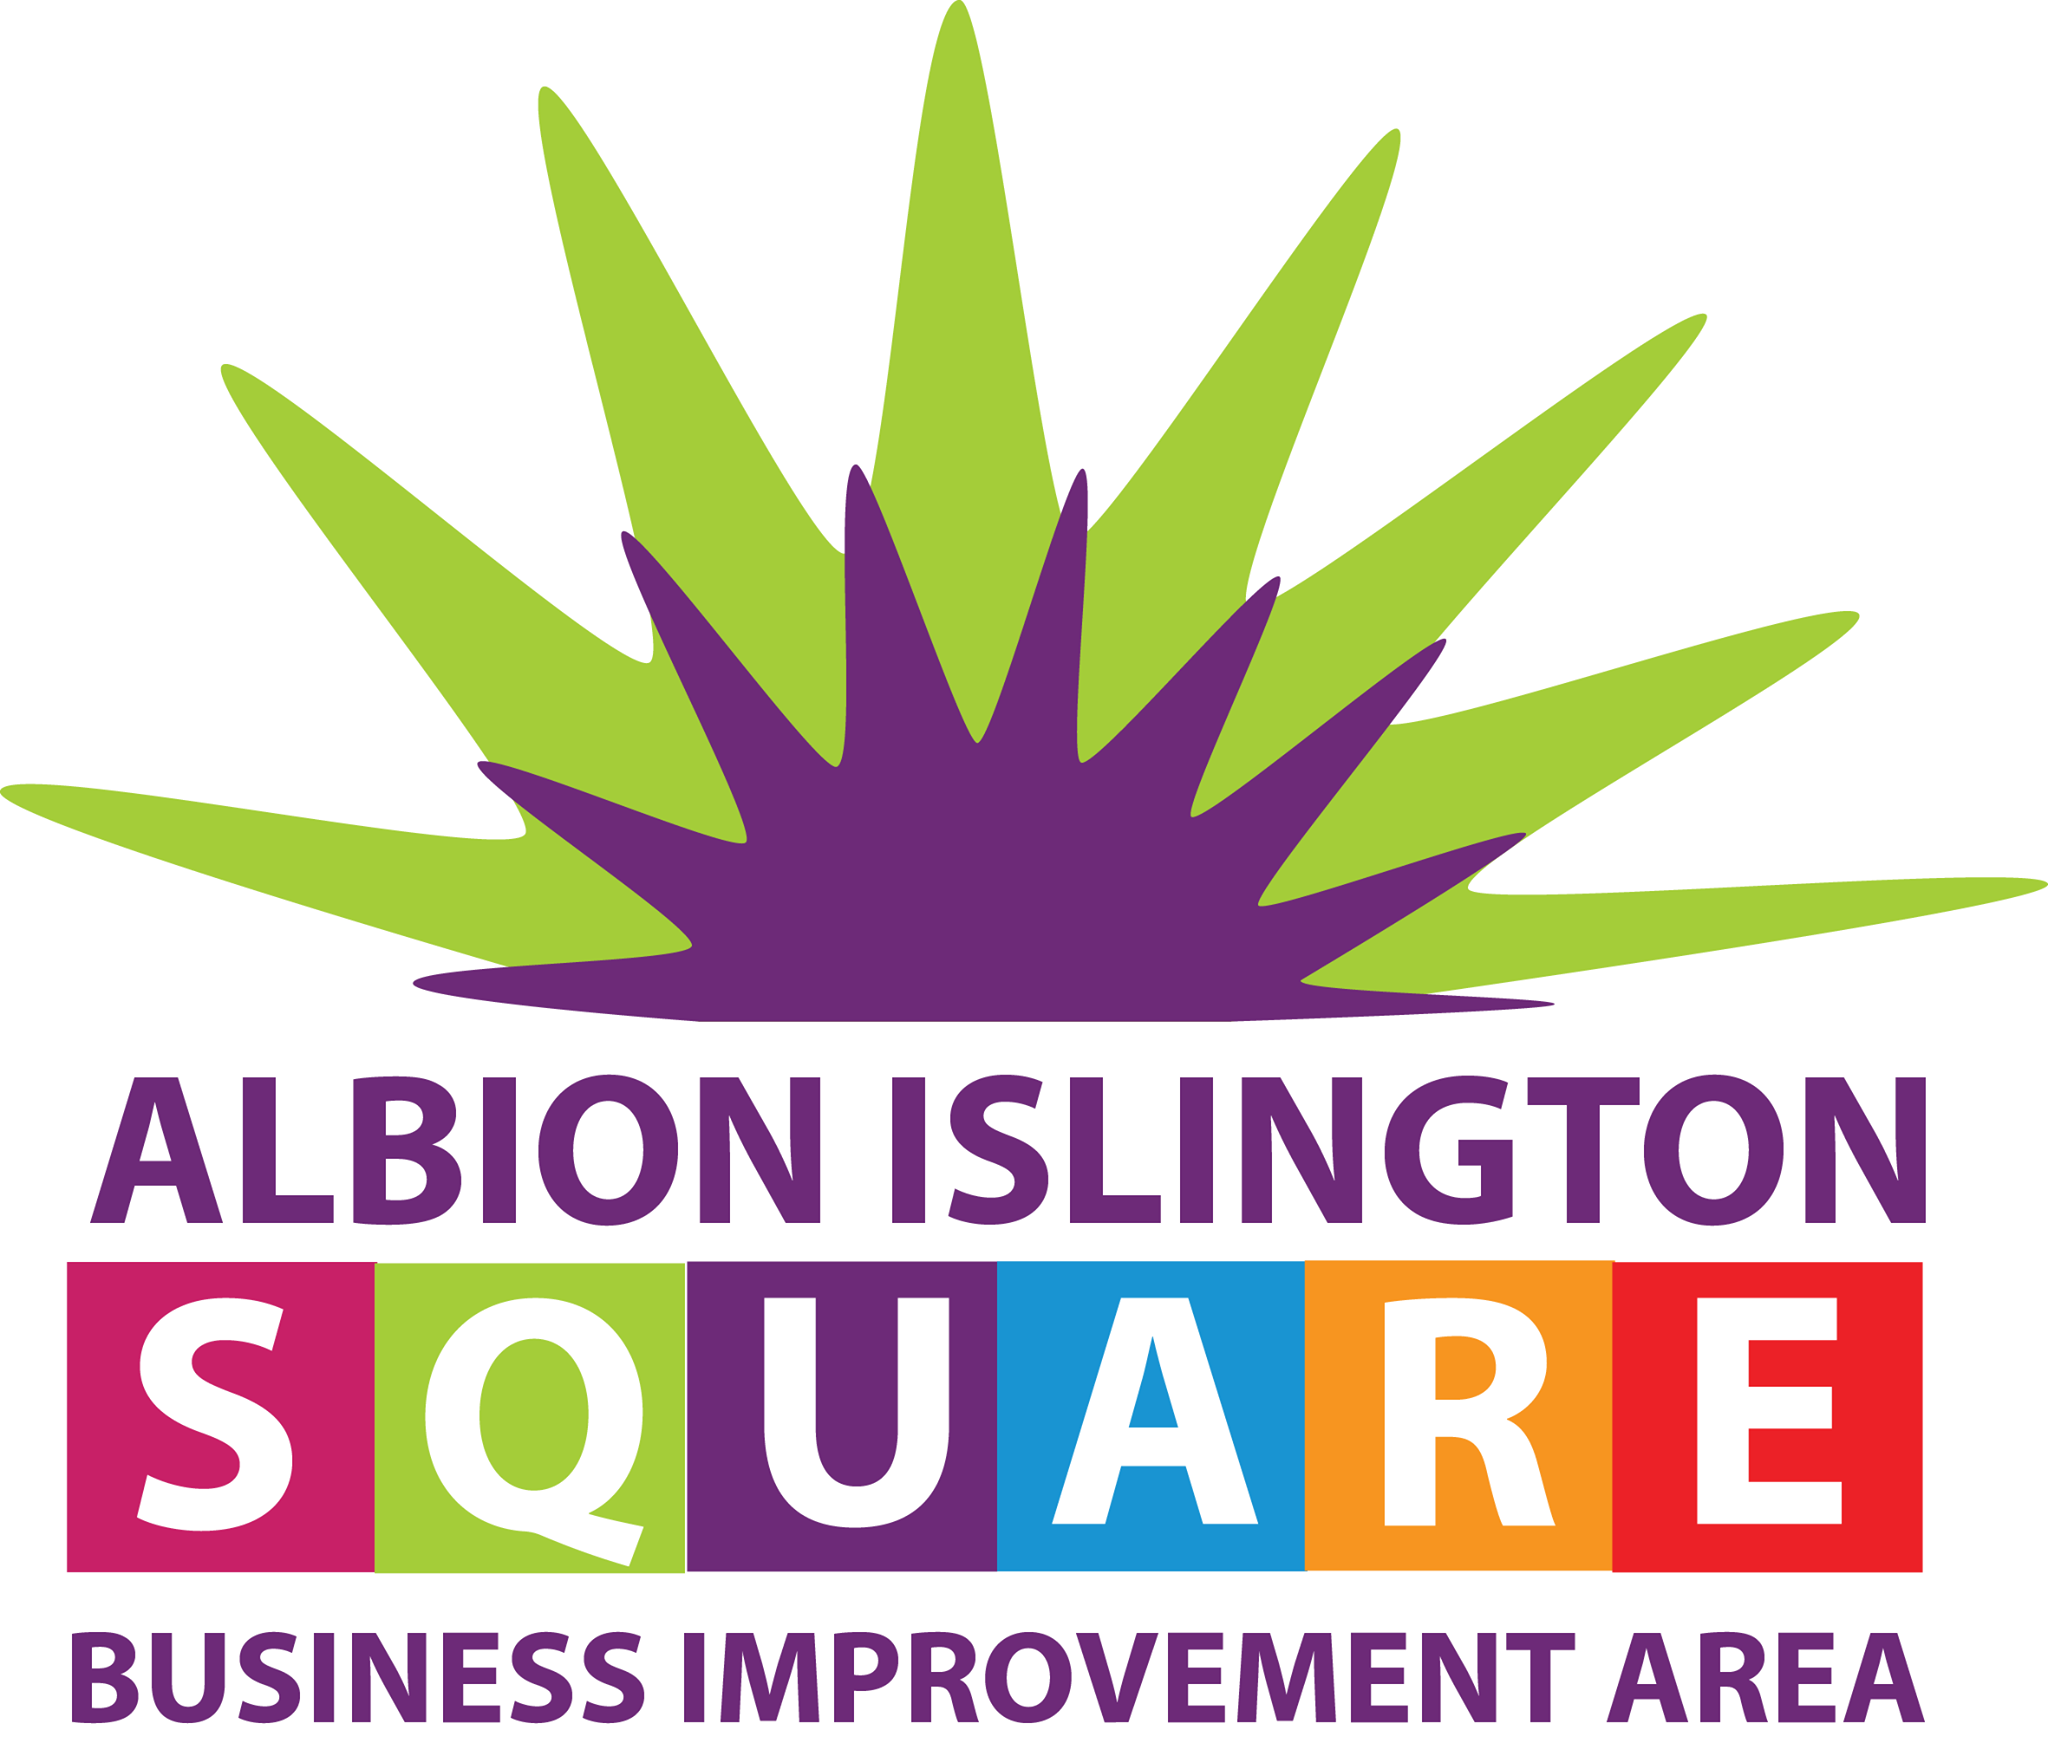 Albion Islington Sq